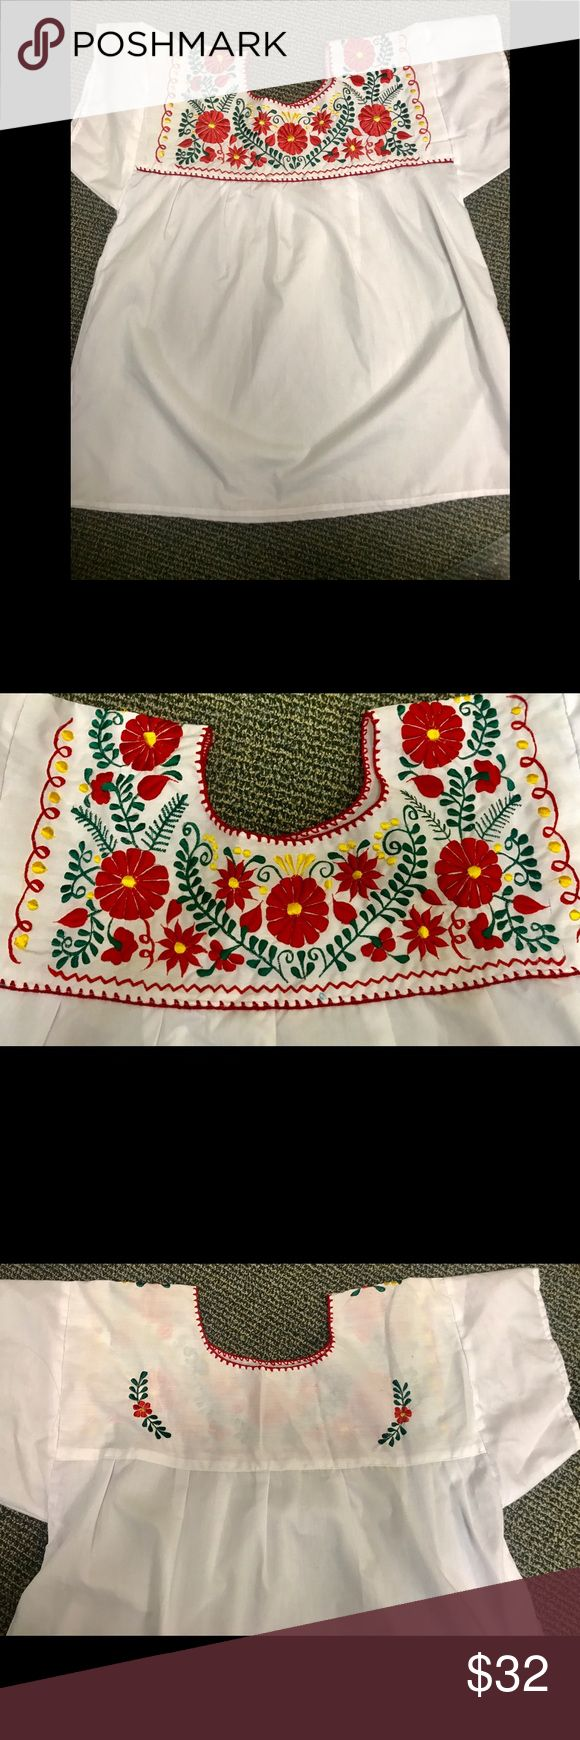 🌹🌼🌺Mexican blouse🌺🌼🌹 ⬇️FINAL PRICE🔽 Beautiful Mexican embroidered blouse. Purchased in Oaxaca MX. No stains No snags No rips. NWOT Tops Tunics